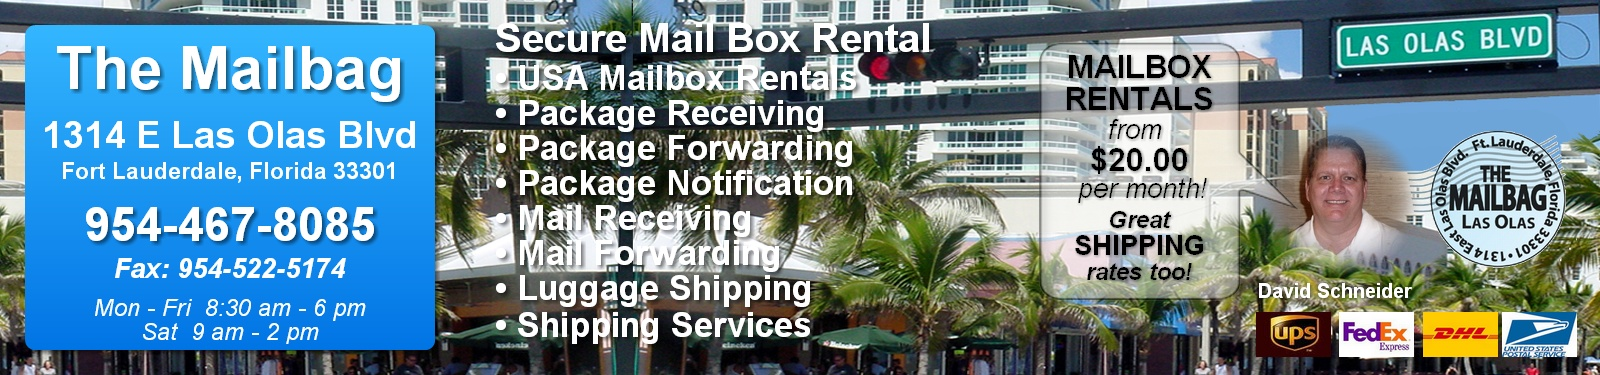 USA Mail Box Rentals - The Mailbag, USA - FedEx Shipping Services, UPS, DHL, USPS